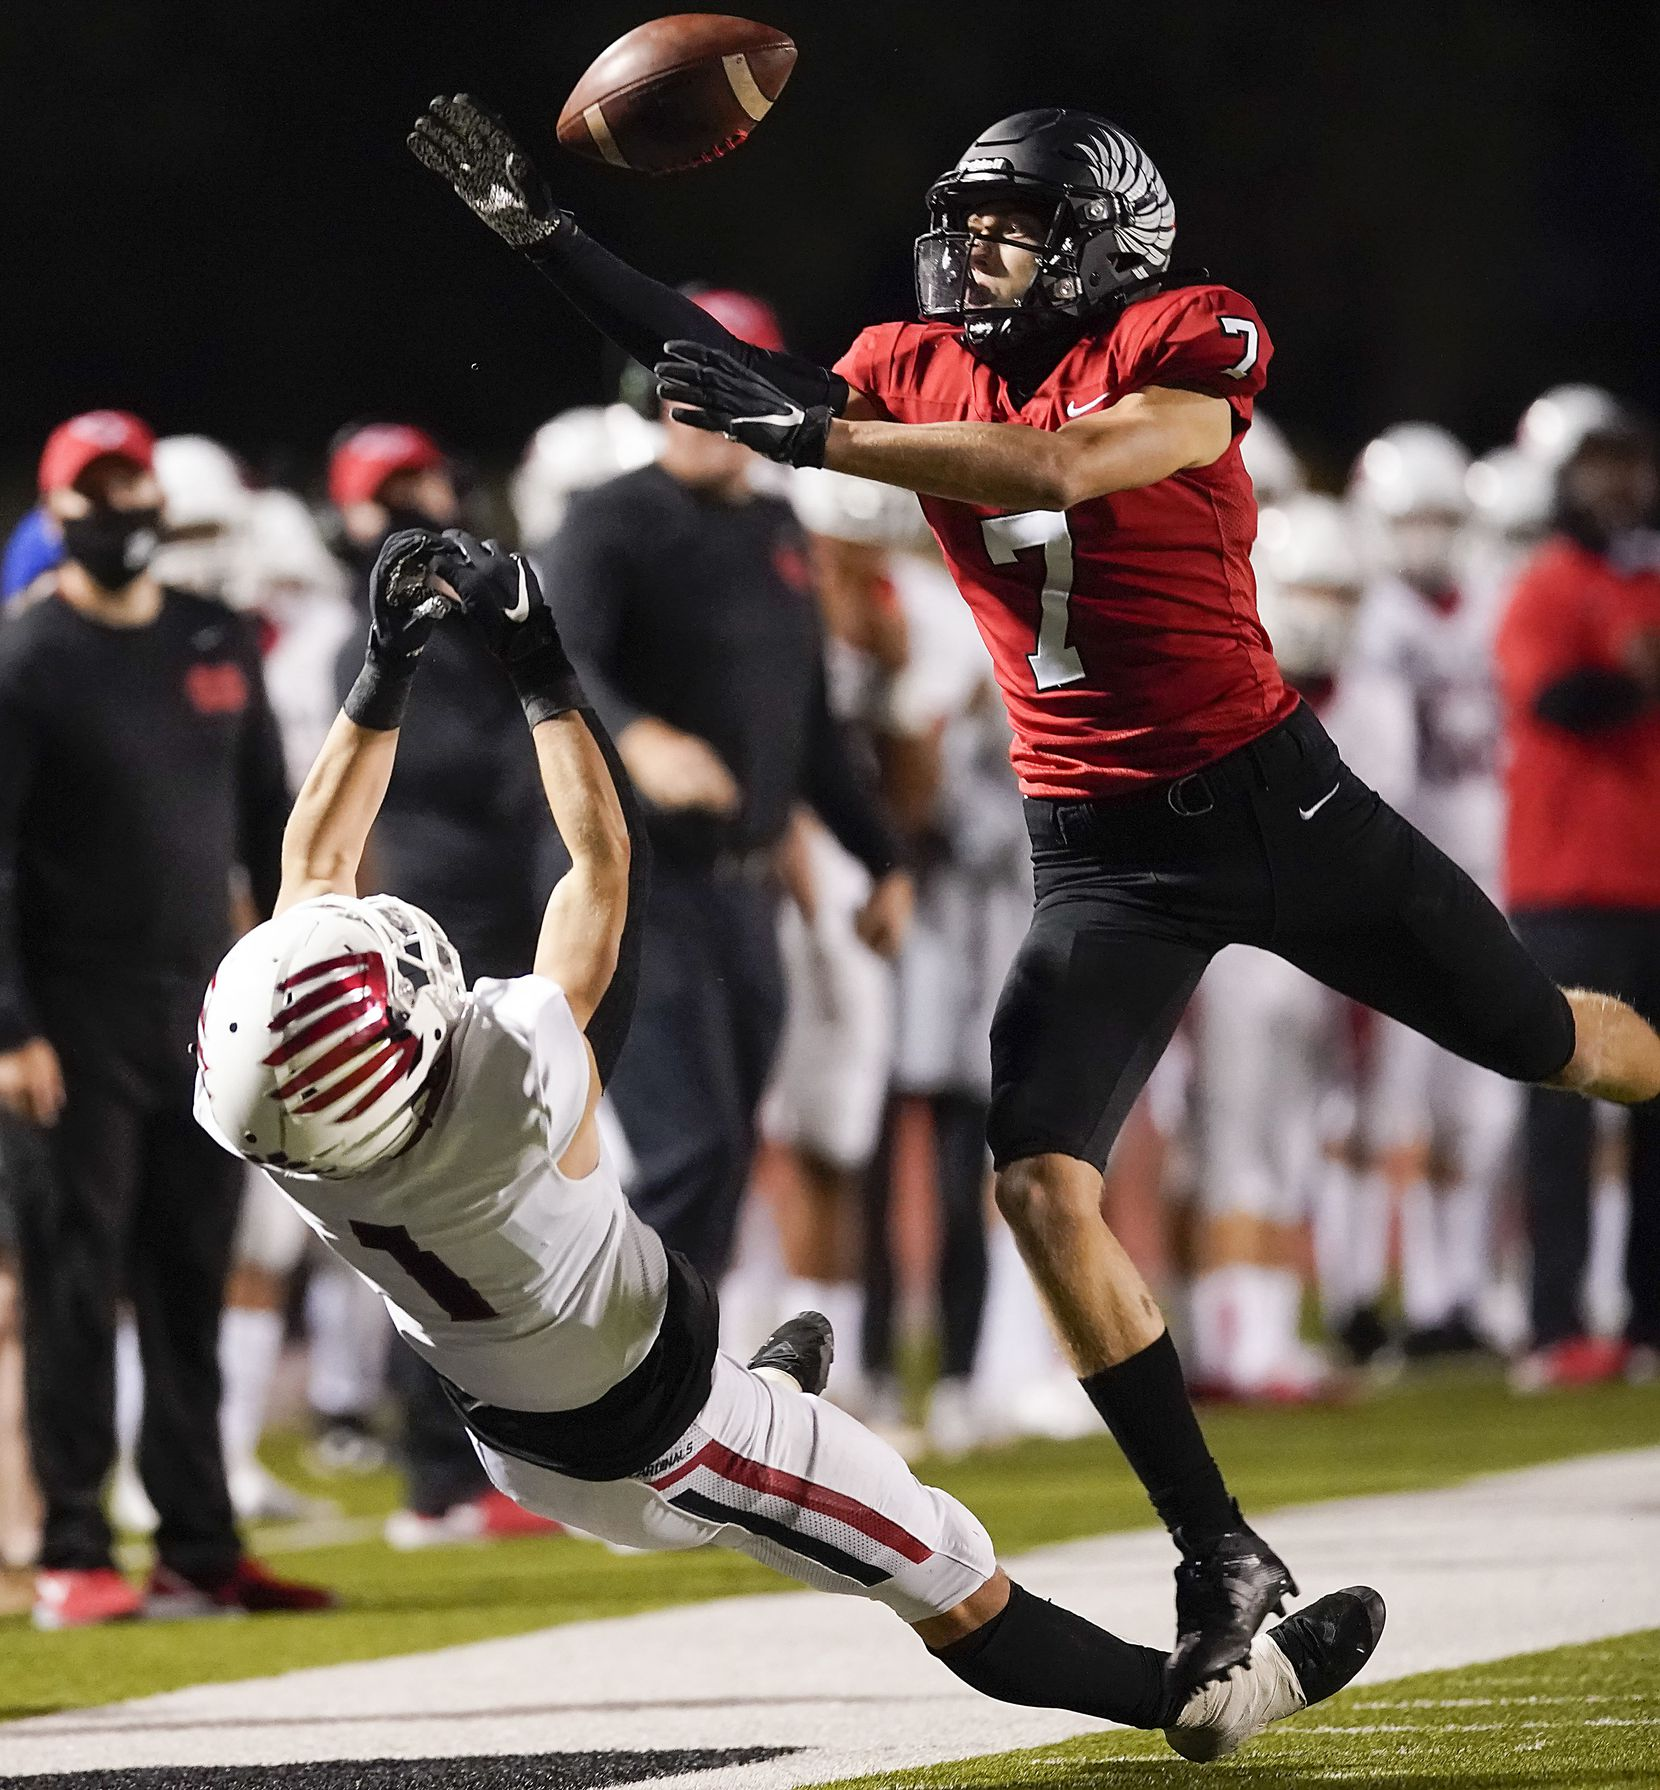 Argyle defensive back Jett Copeland (7) breaks up a pass intended for Melissa wide receiver Damon Youngblood (1) during the first half of a high school football game on Friday, Oct. 2, 2020, in Argyle, Texas. (Smiley N. Pool/The Dallas Morning News)